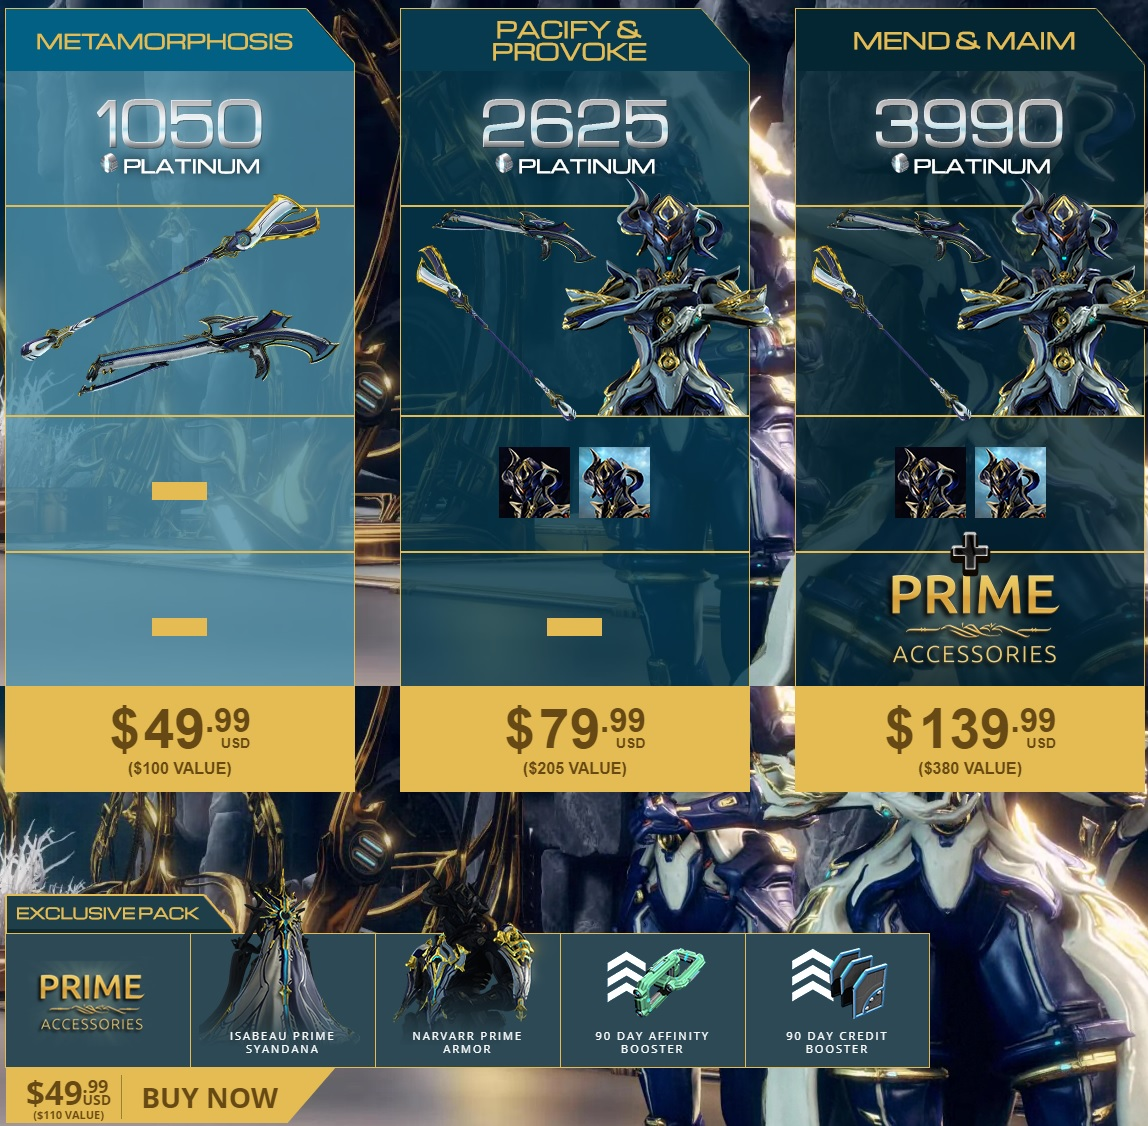 Equinox Prime Access: MEND & MAIM - Before buy see MORE INFO